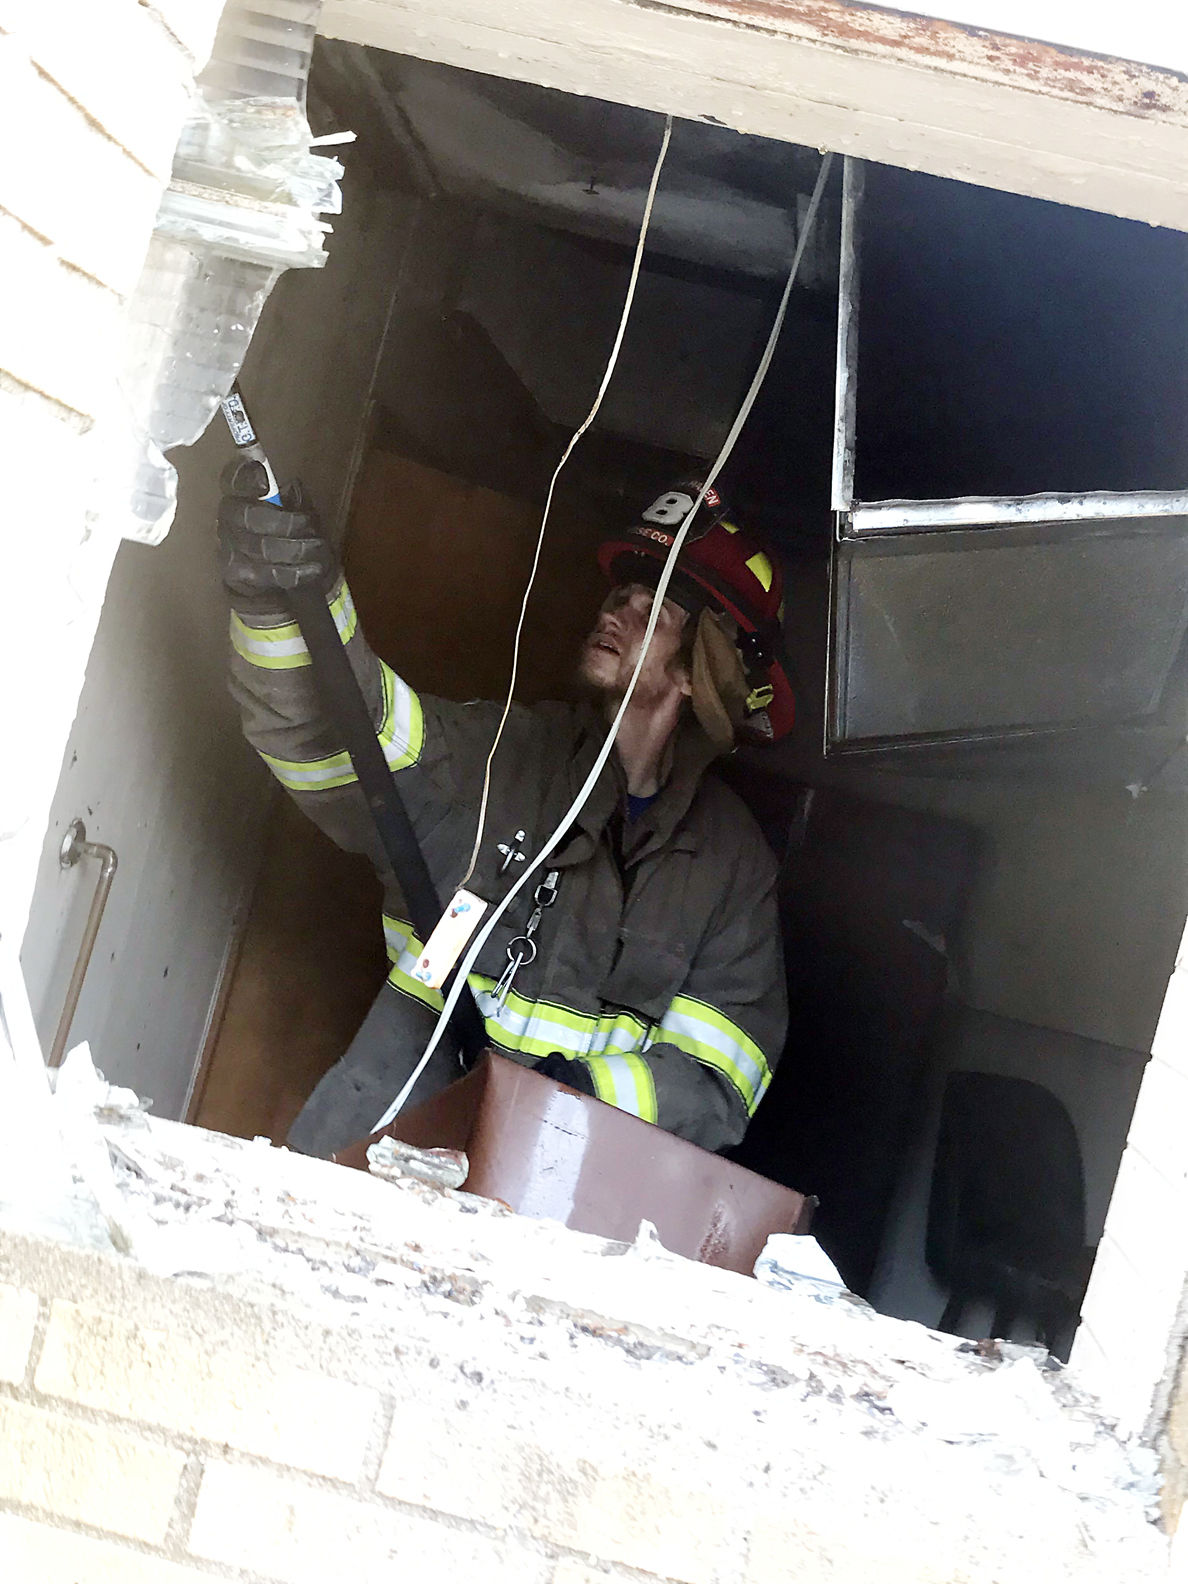 Connellsville social club catches fire early Tuesday